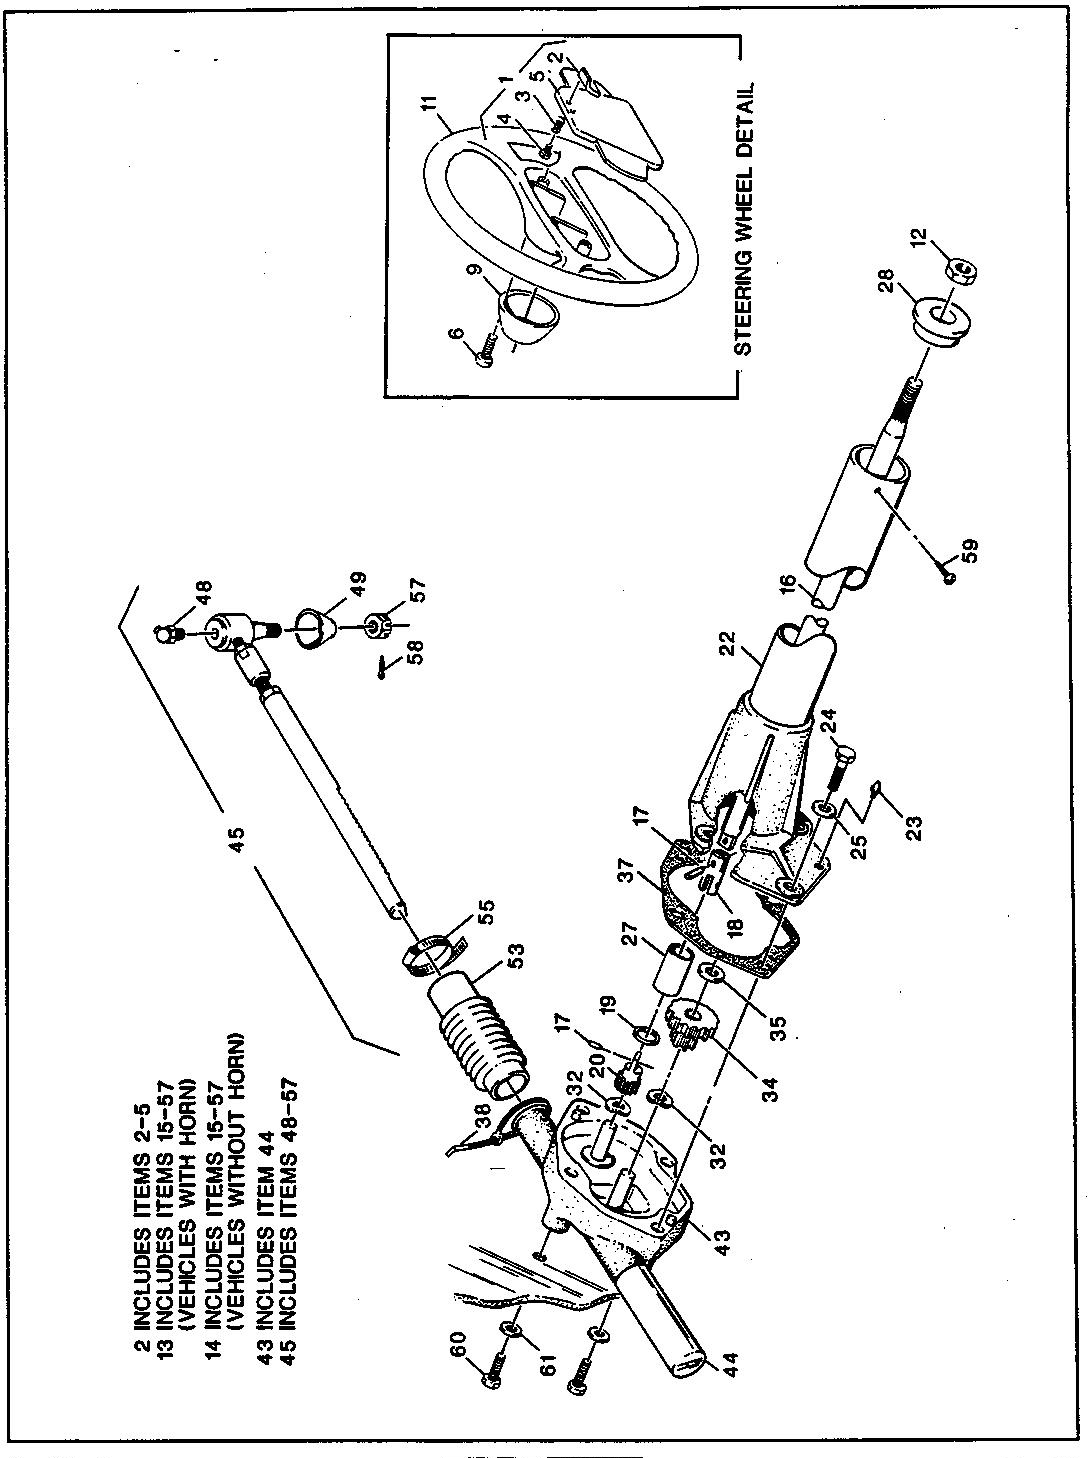 42_1989-1991 Electric and Gas Steering